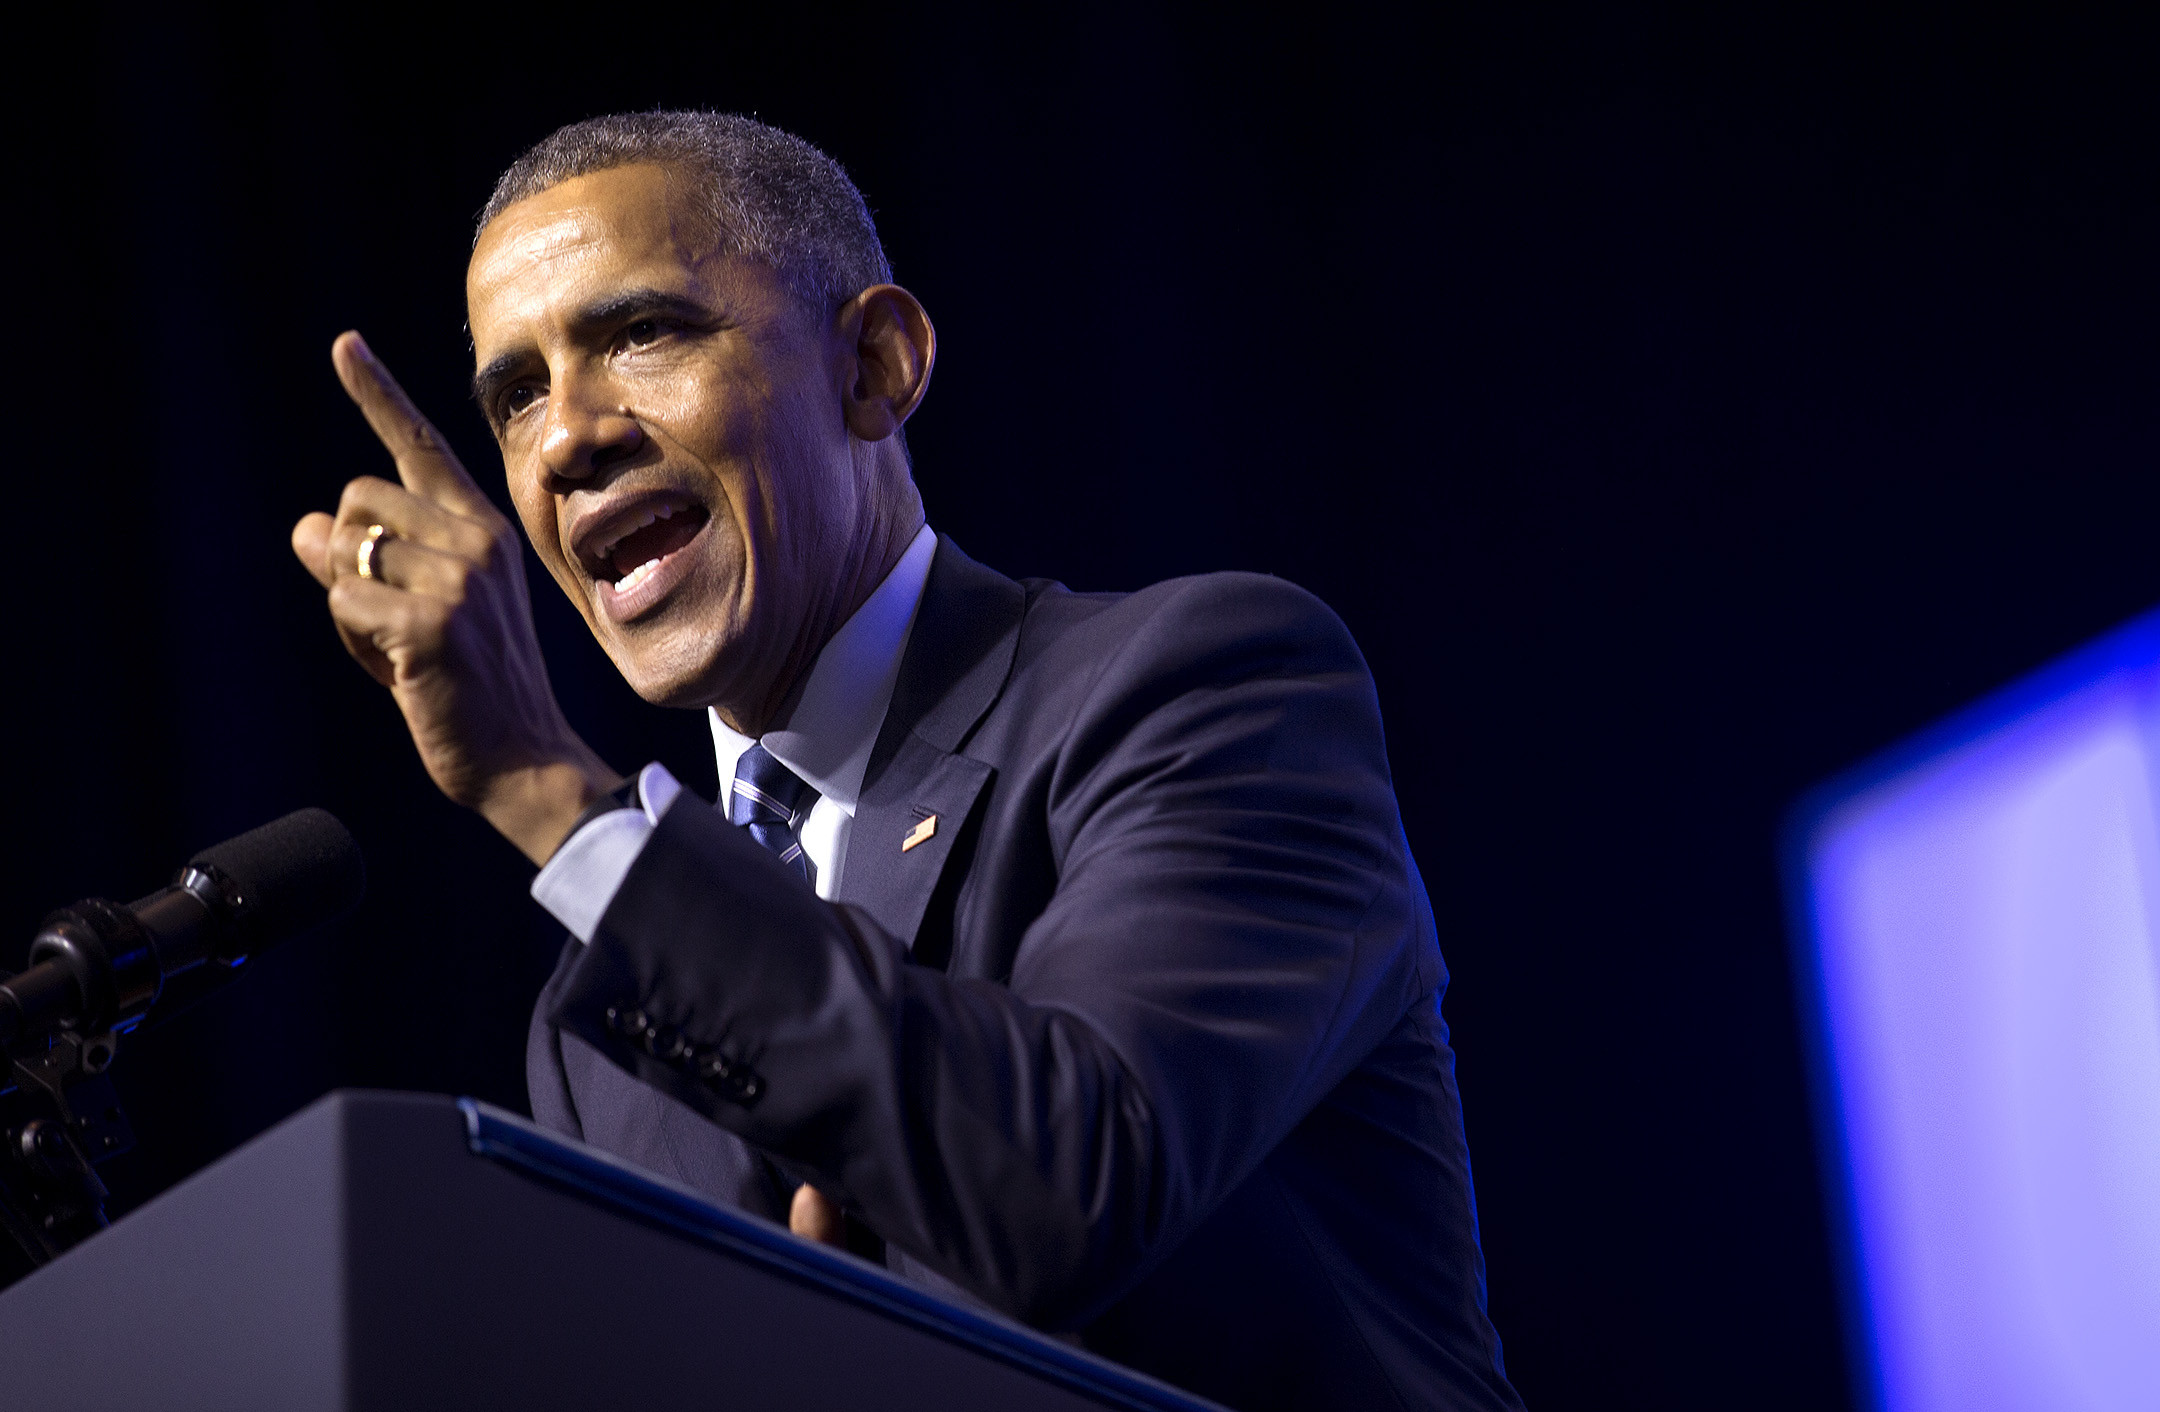 10 Ways Obama Wants Our Unfair Criminal Justice System to Change